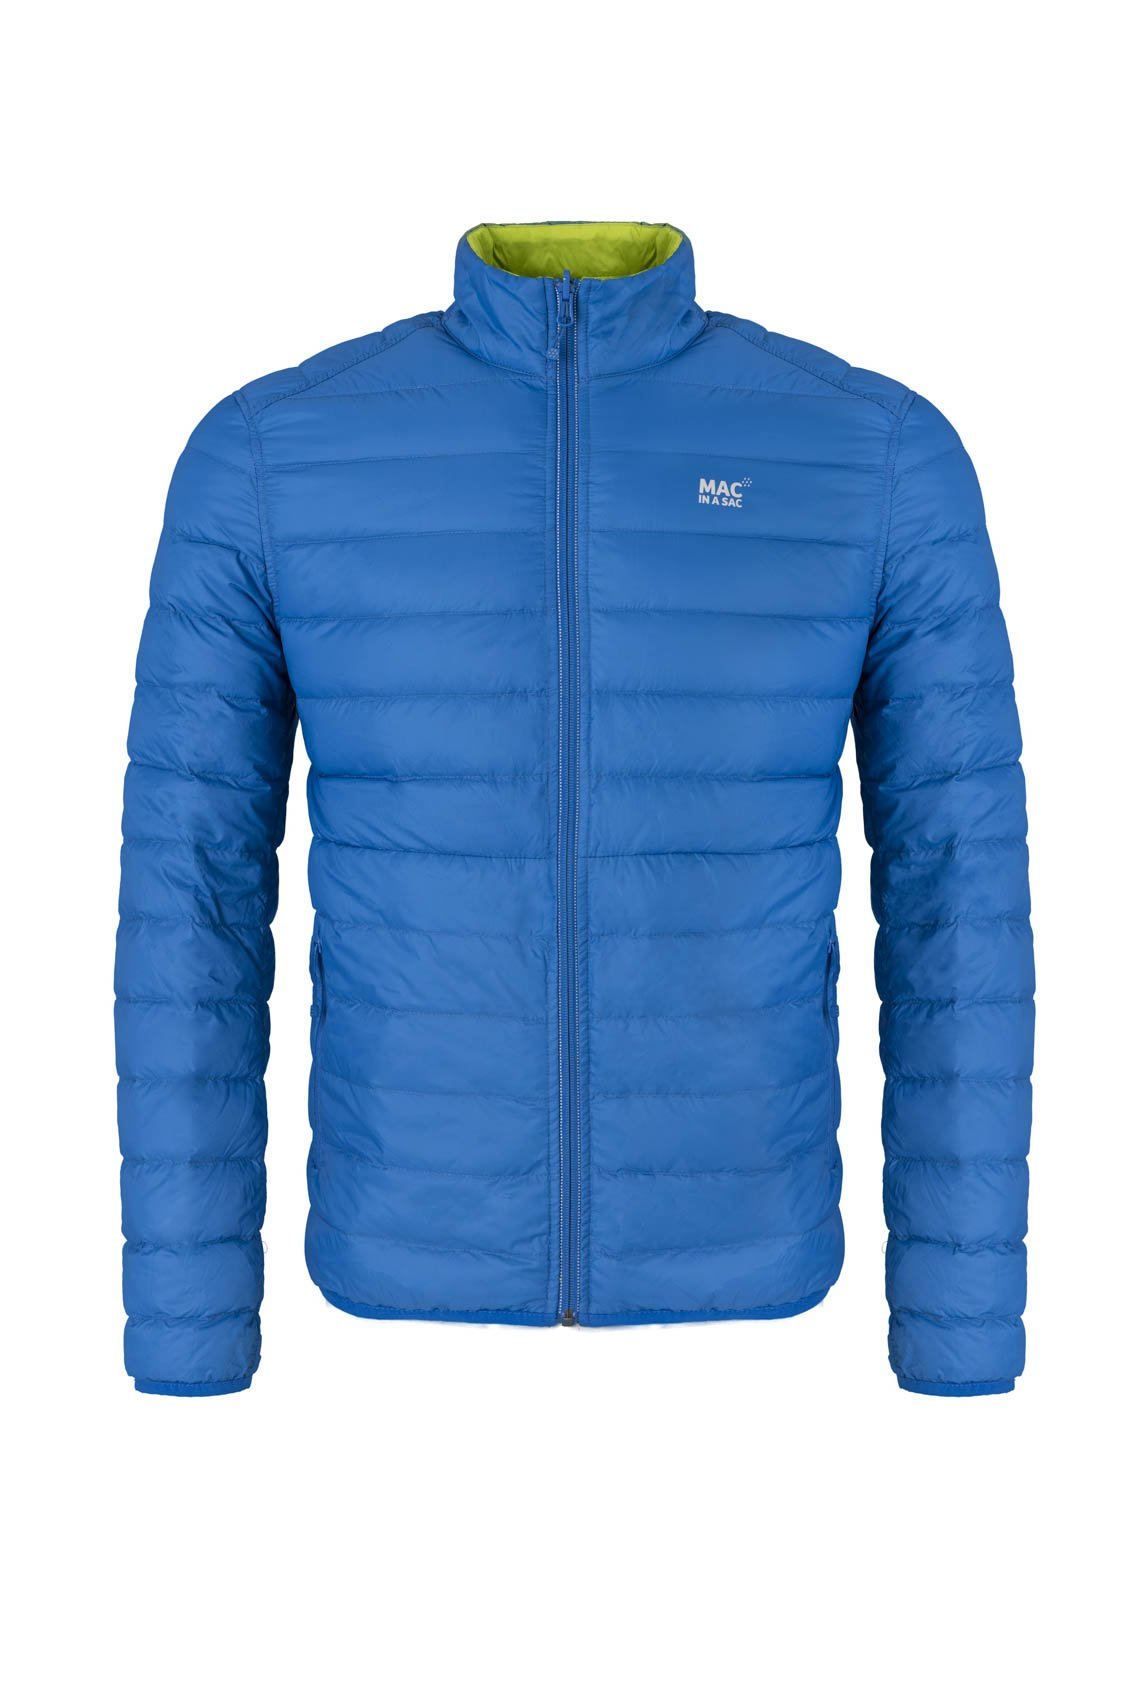 Mac in a Sac Polar - Mens Reversible Packable Down Jacket